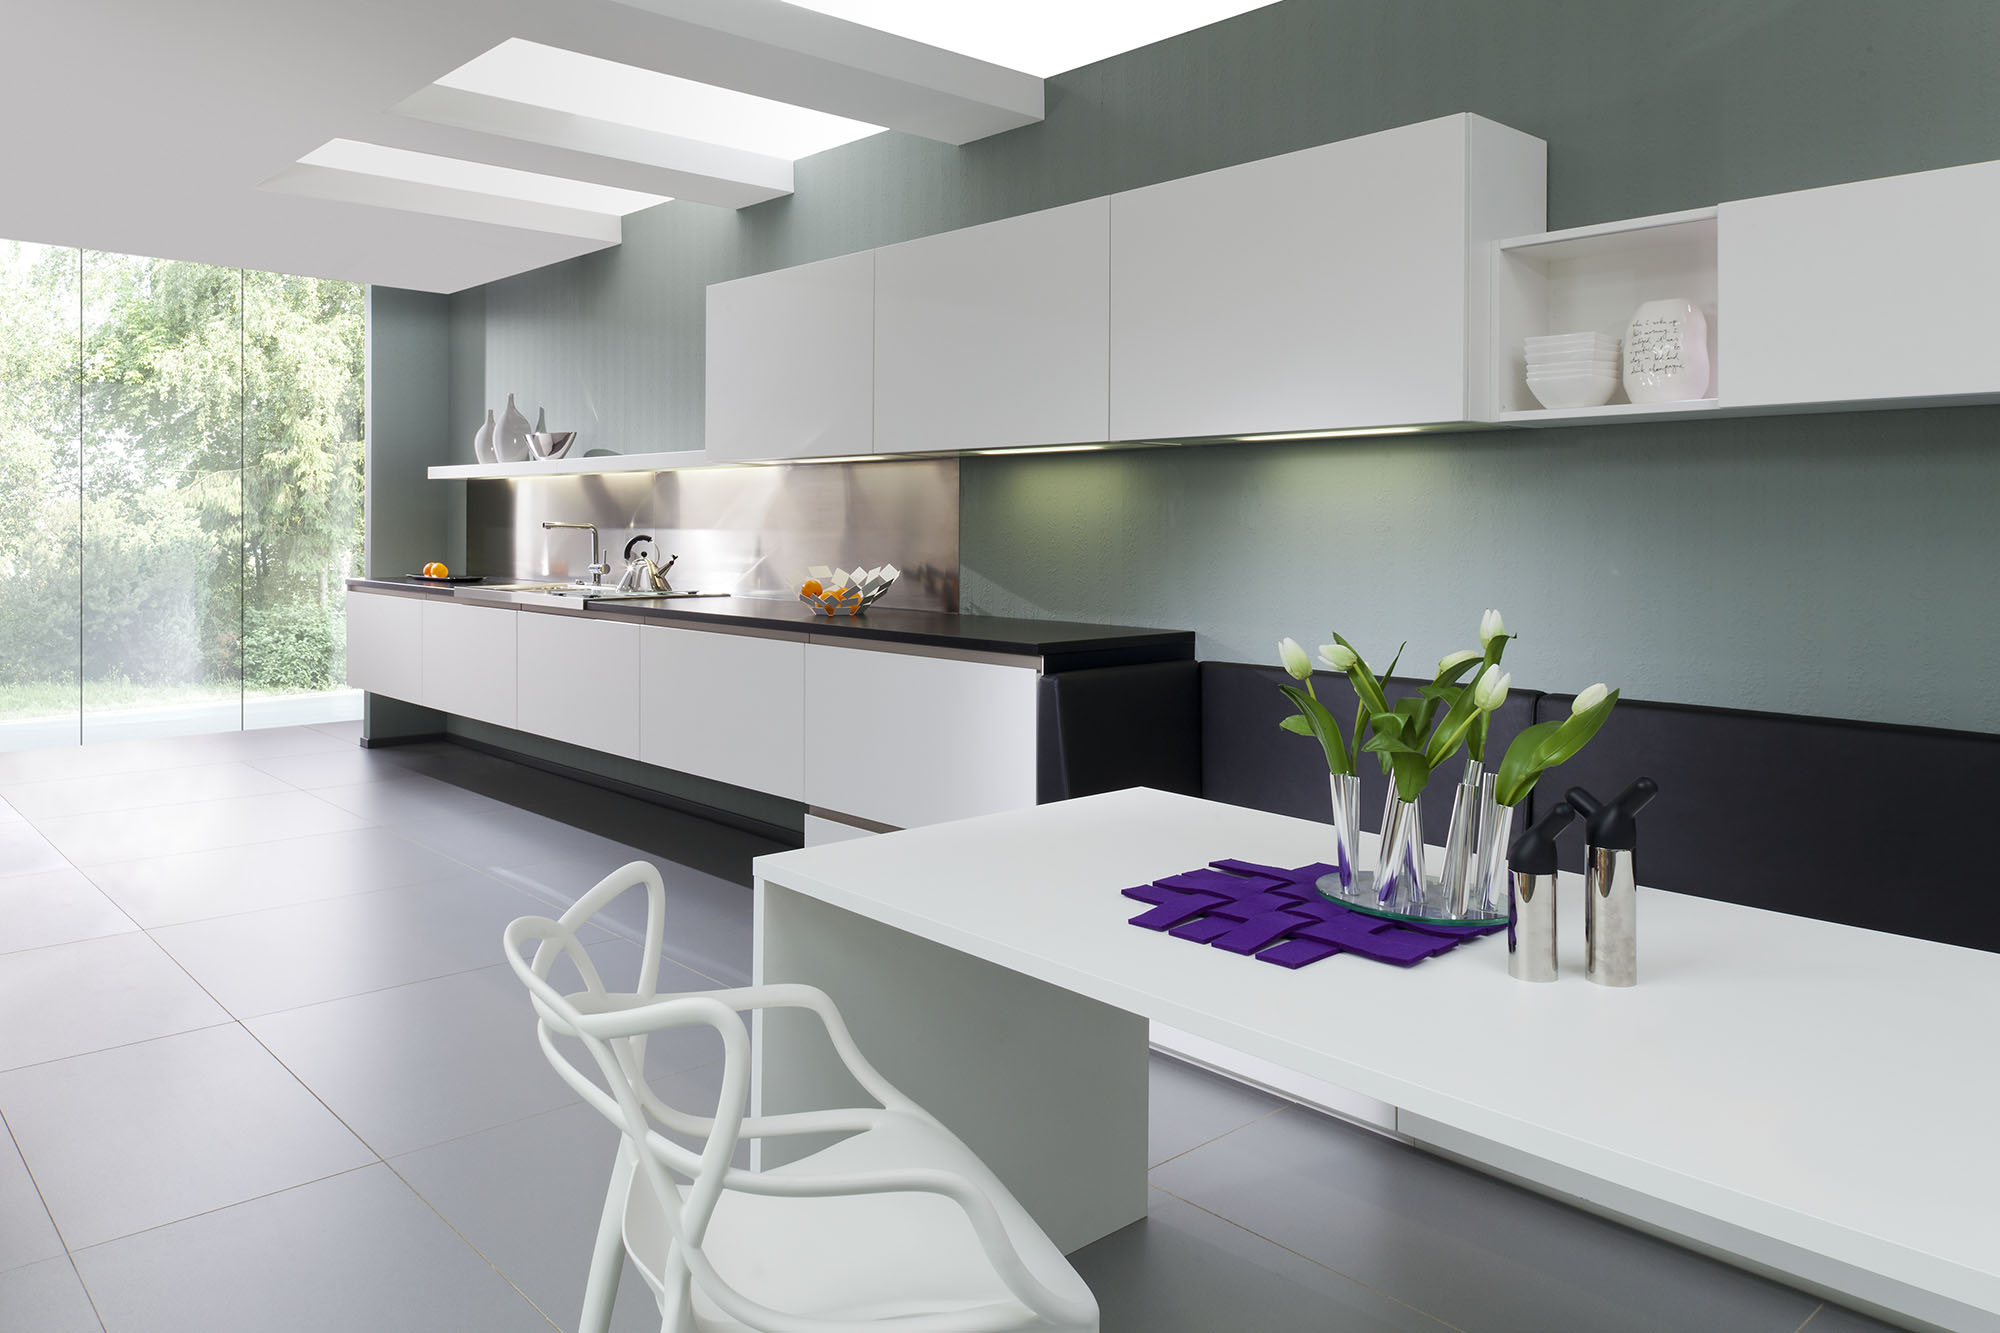 designer kitchens | luxury kitchens | modern kitchen designs